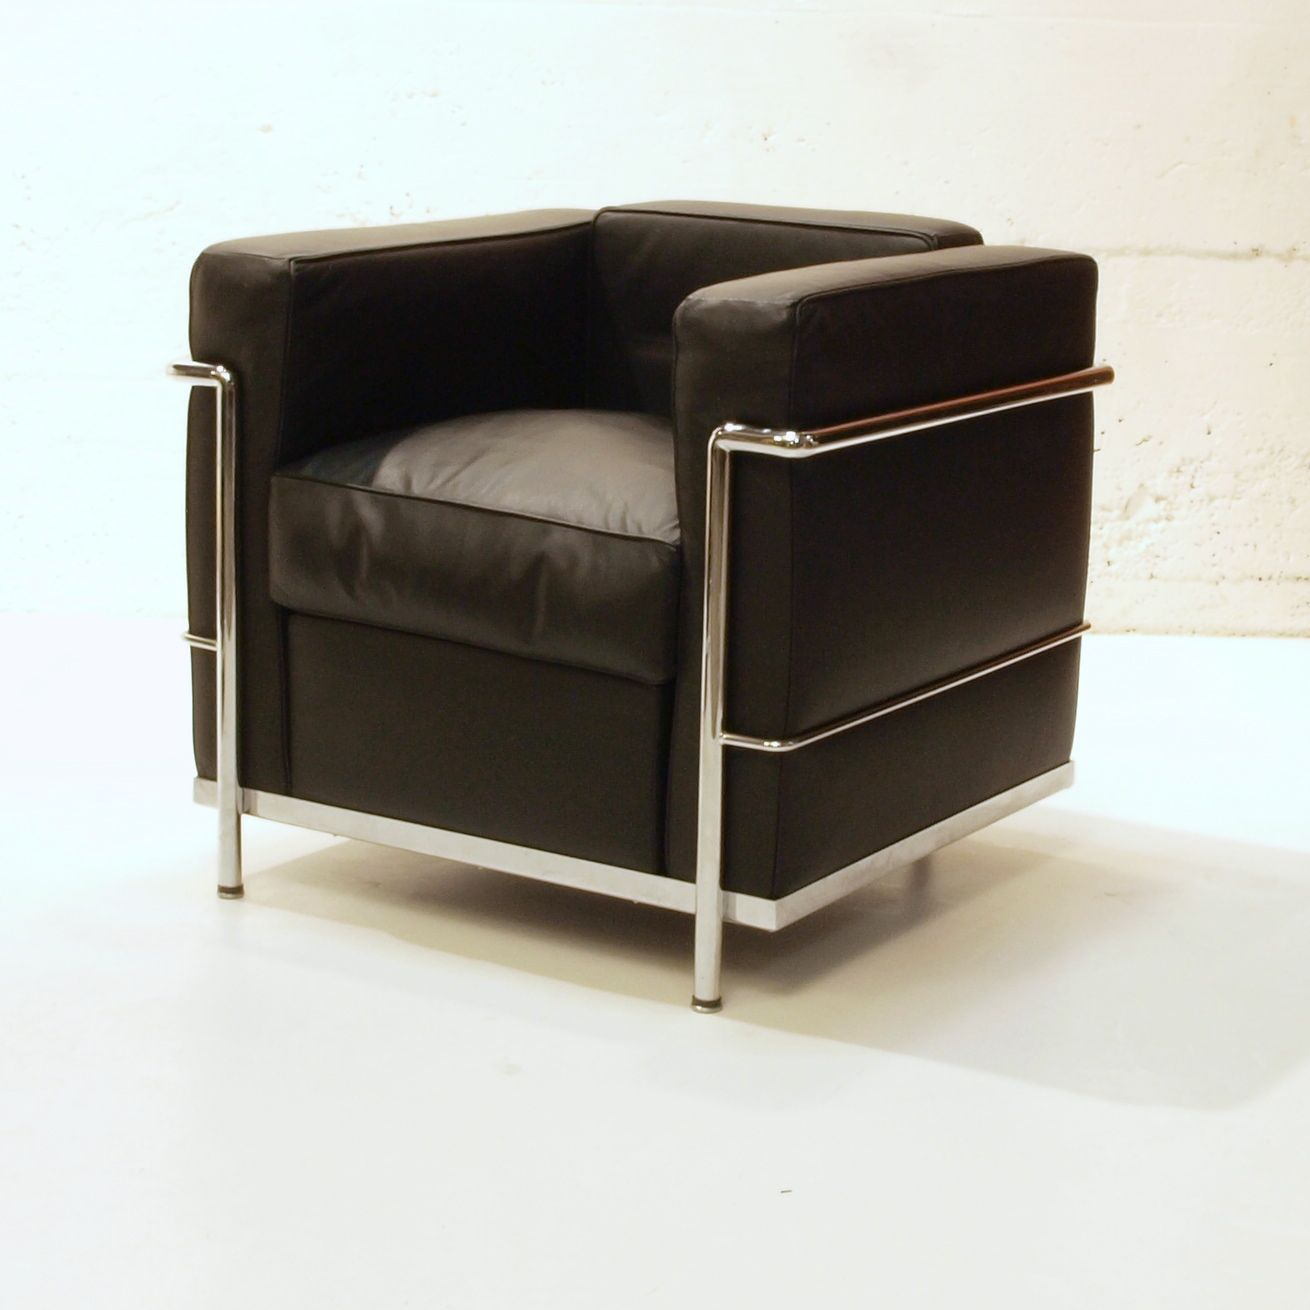 le corbusier sessel lc2 von cassina m bel z rich vintagem bel. Black Bedroom Furniture Sets. Home Design Ideas